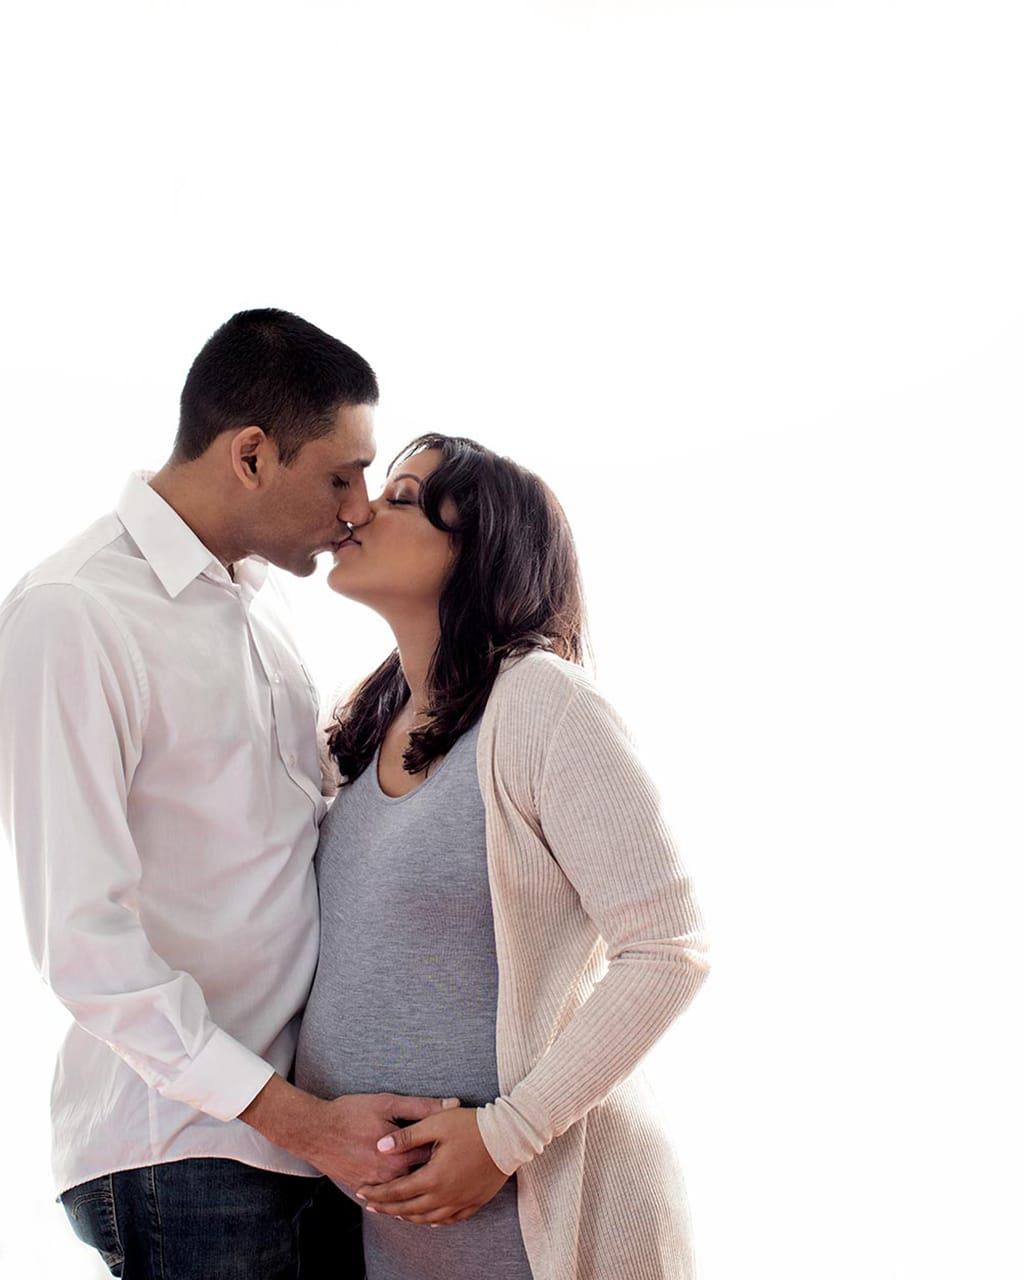 gorgeous maternity session in private studio with family involved